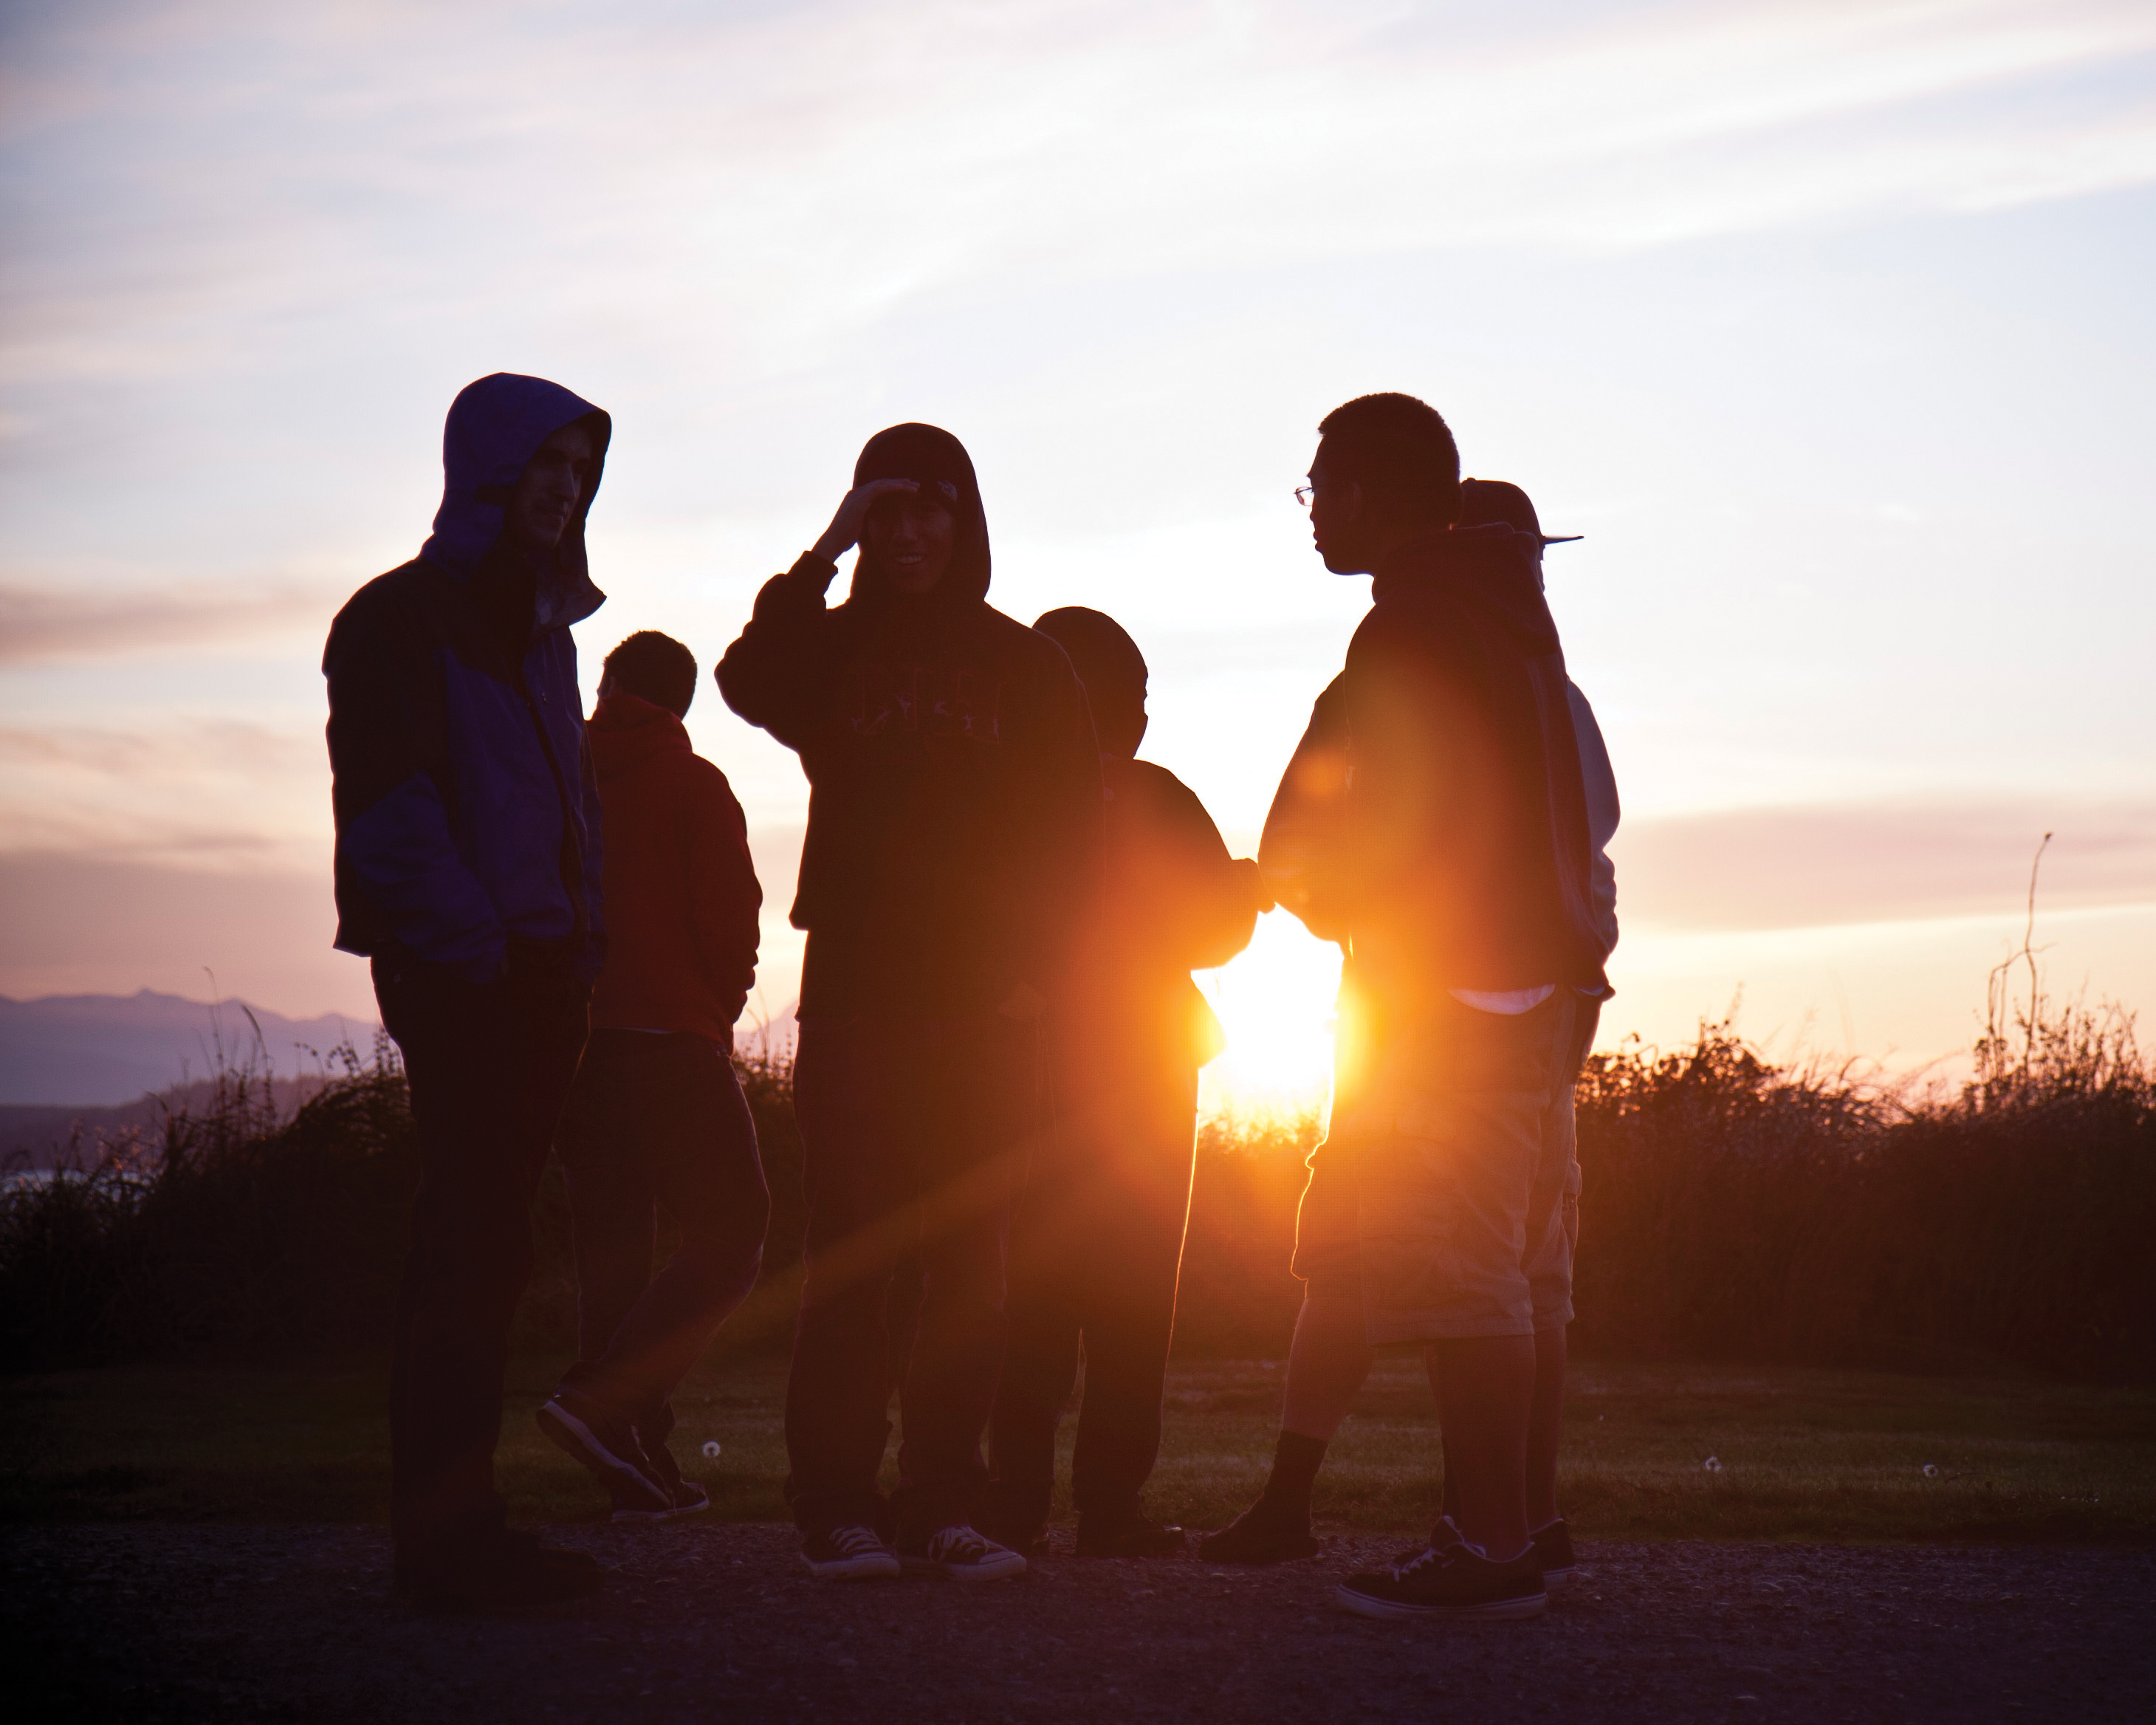 Silhouette of a group of students with the sun setting behind them.